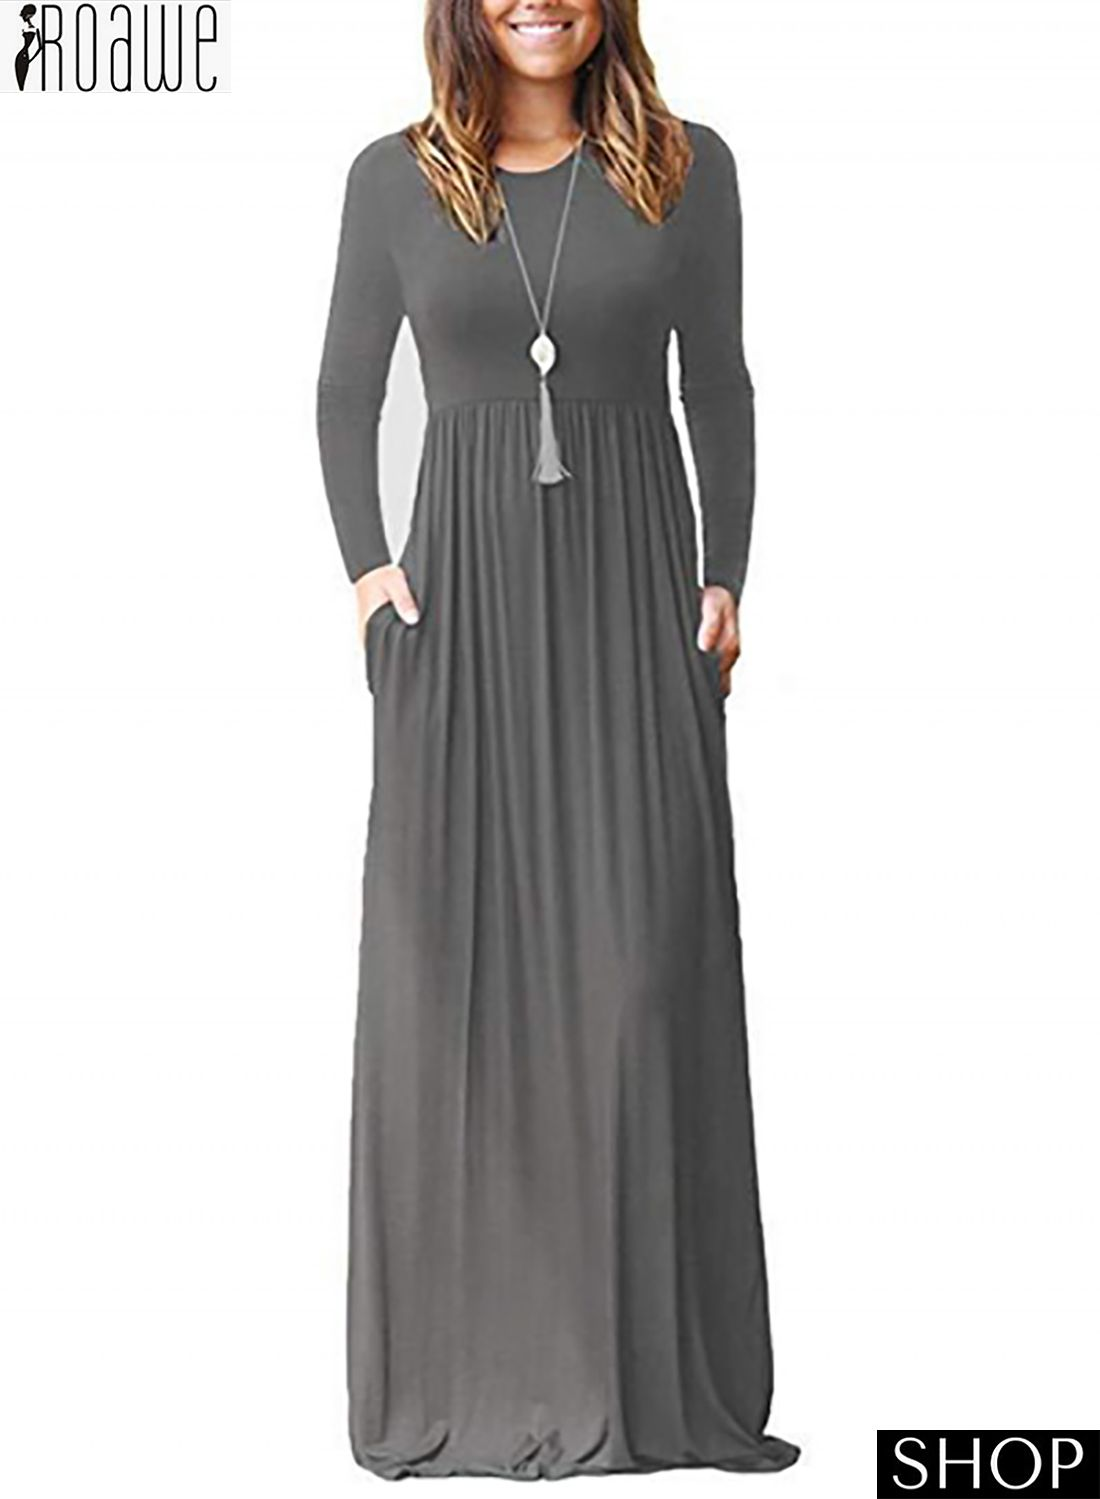 Pin by Sabine Schadt on A-Dress  Long dress casual, Pocket